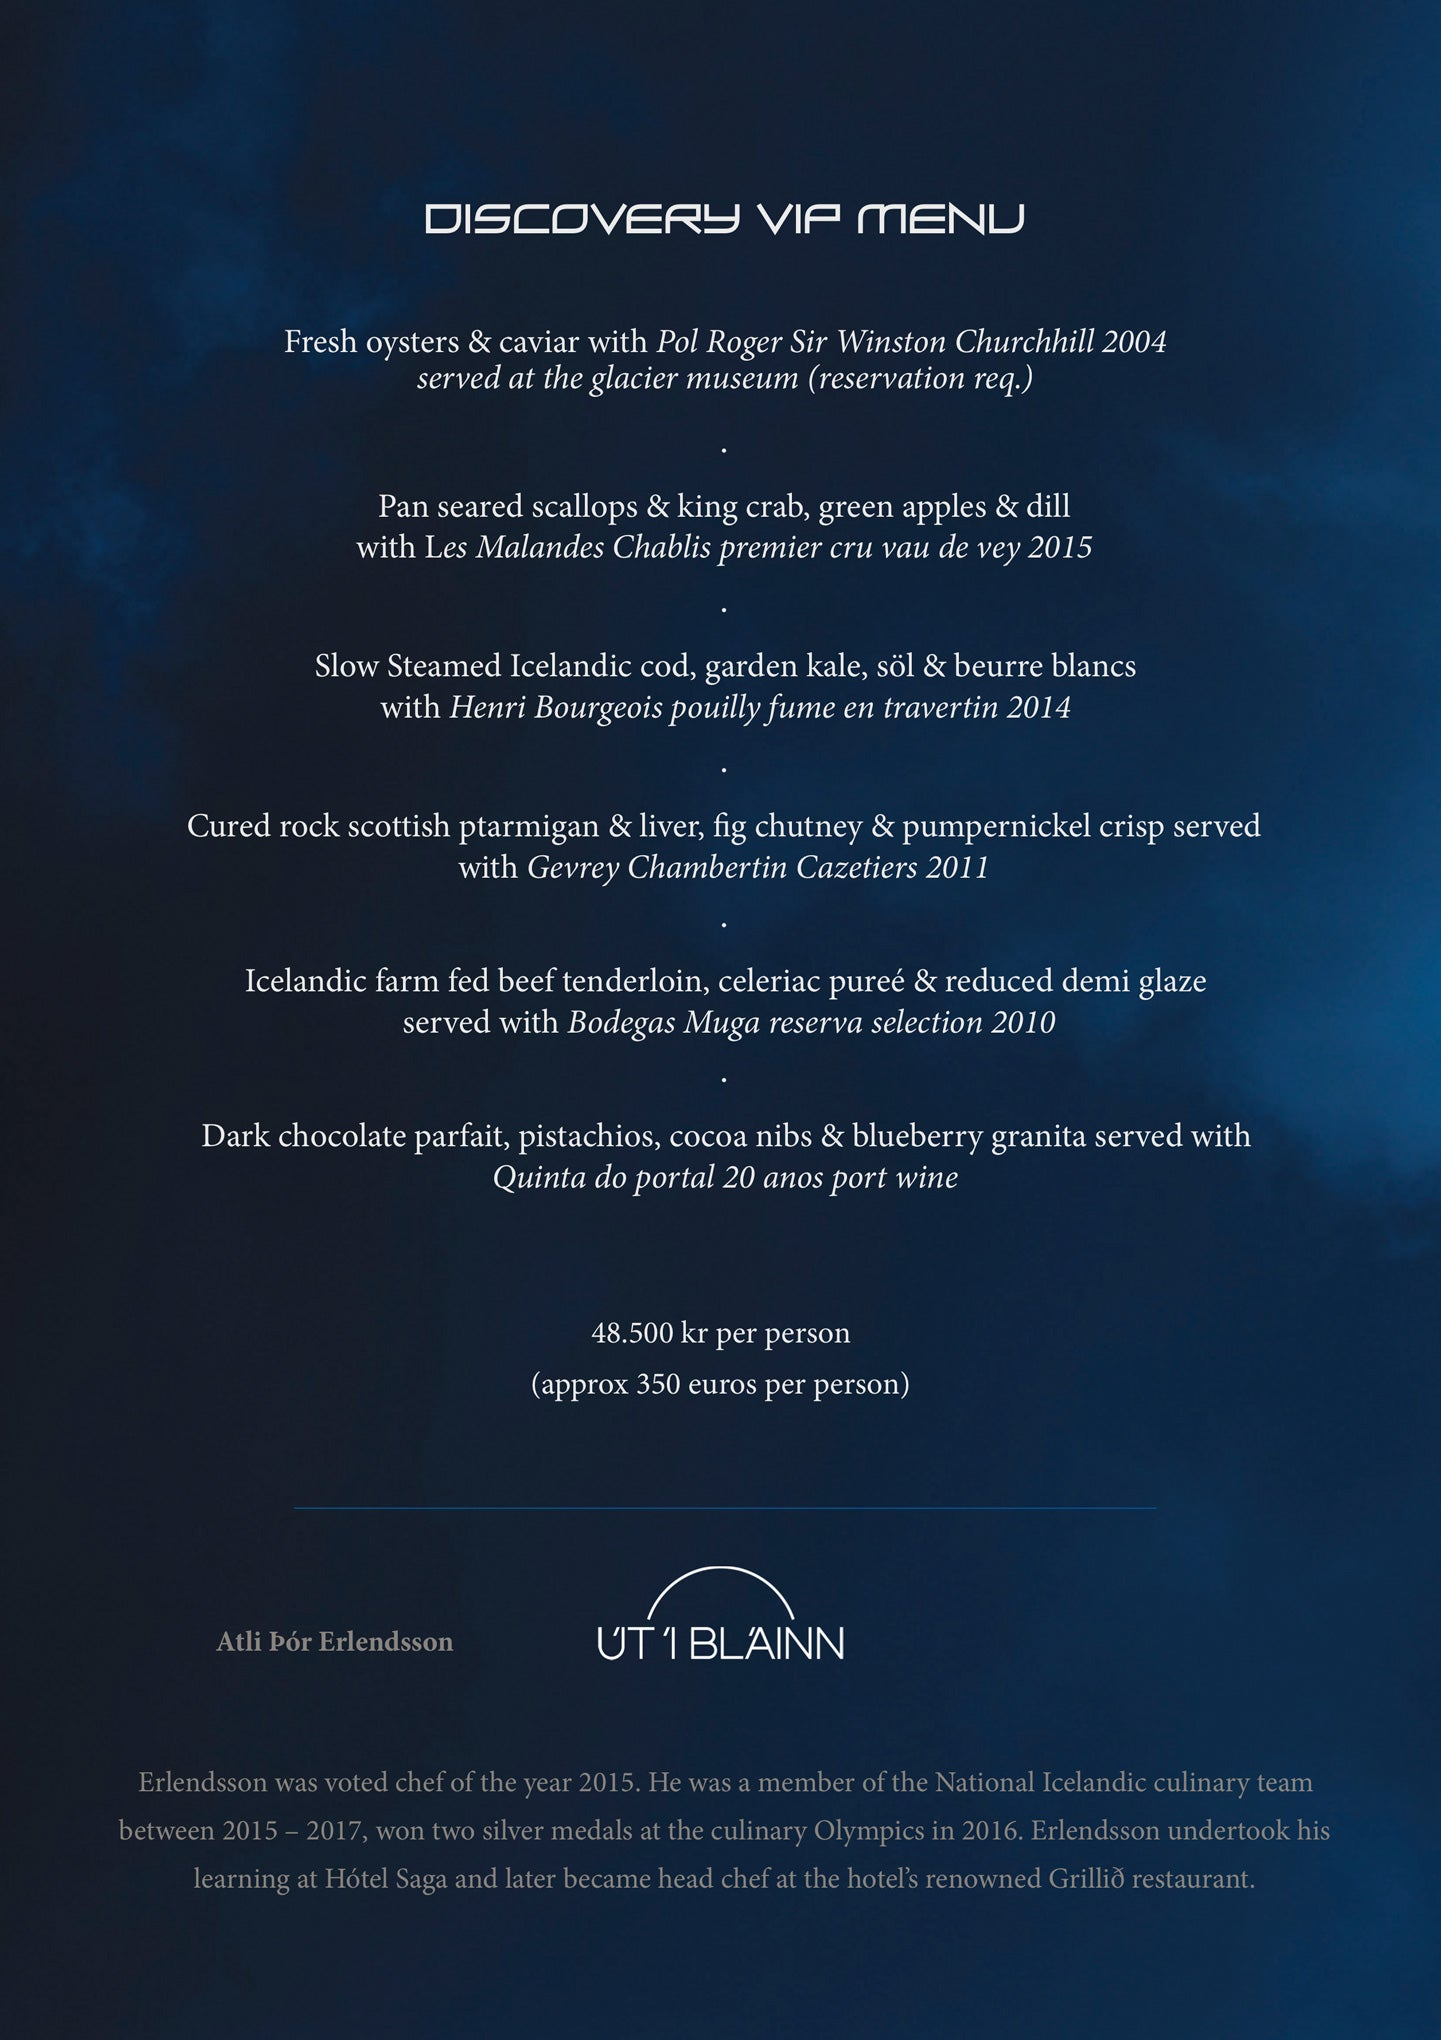 An Icelandic discovery menu served for VIP's at Perlan